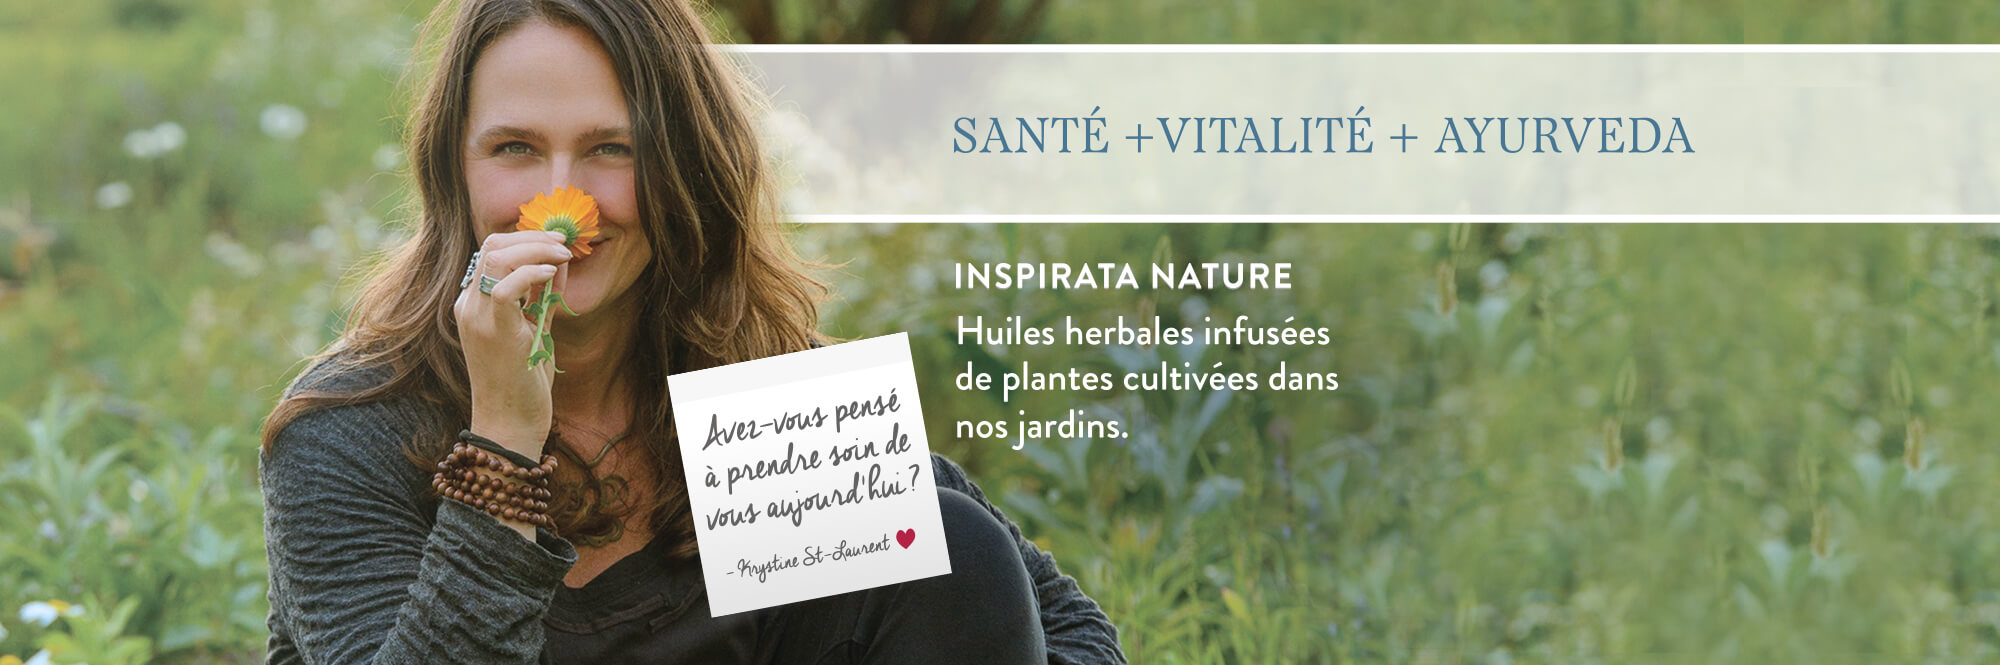 Inspirata Nature - Krystine St-Laurent